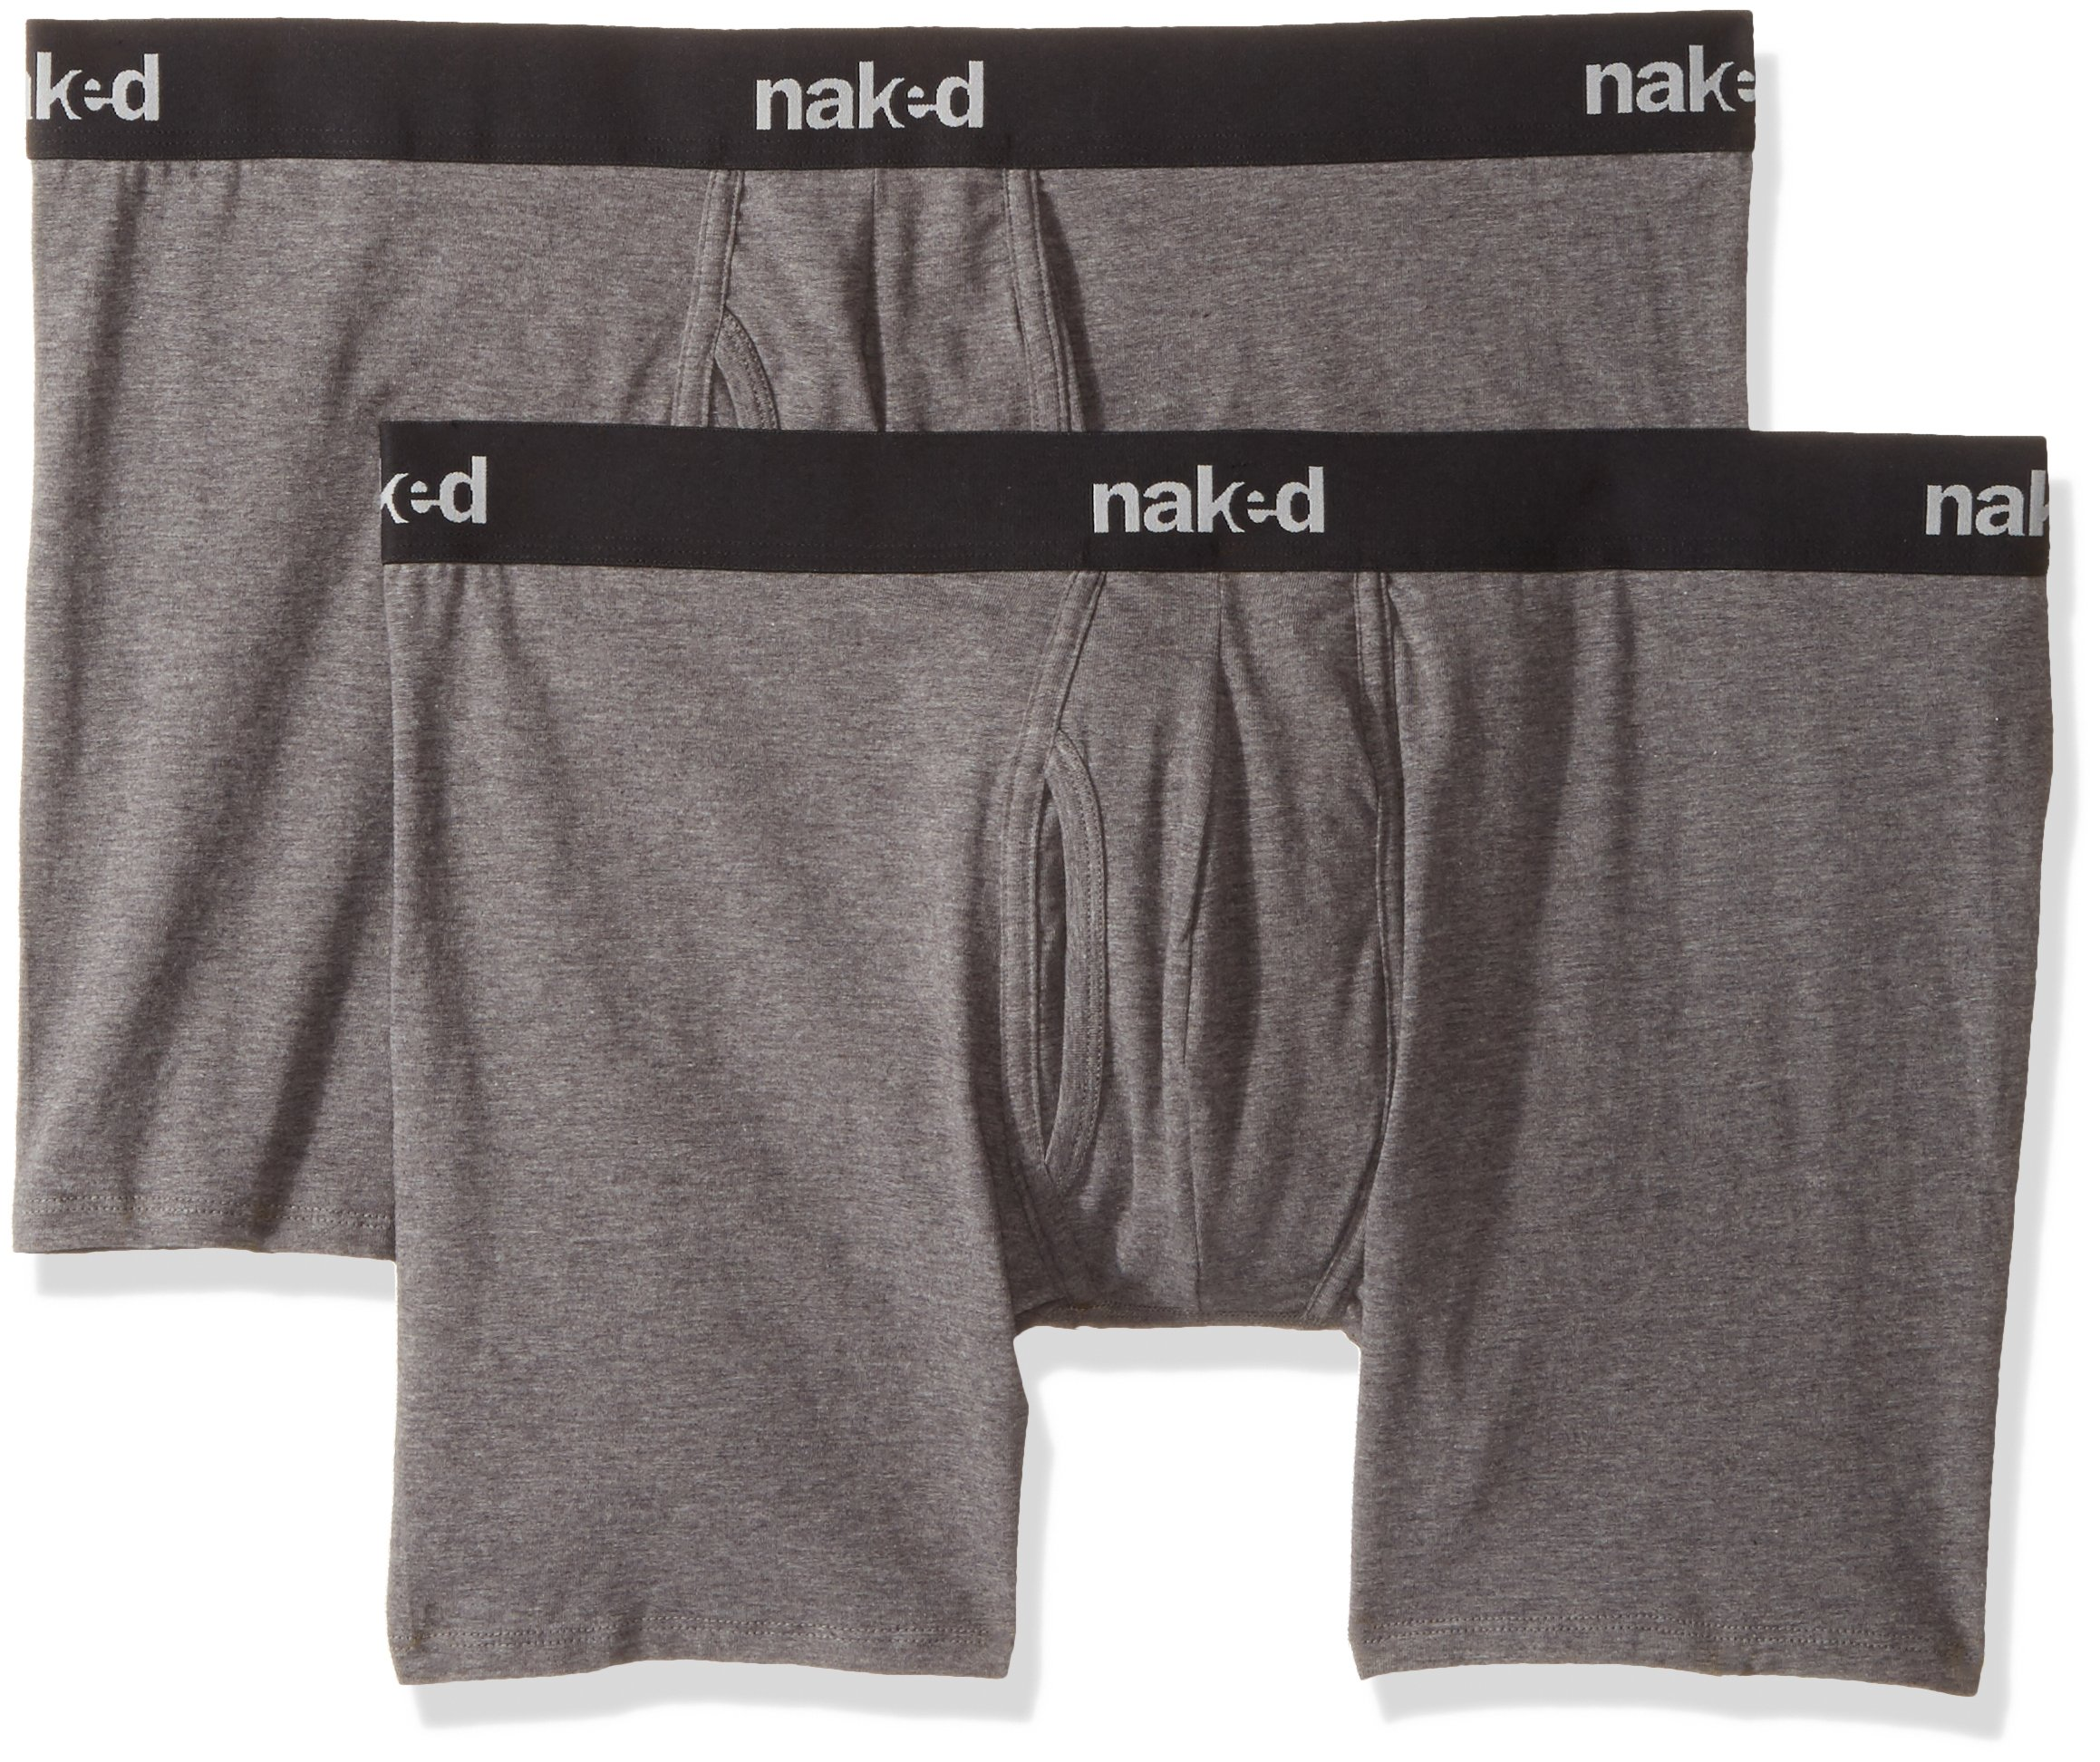 Naked Men's Stretch Cotton Boxer Briefs 2 Pack, Dark Grey Heather, Large by Naked